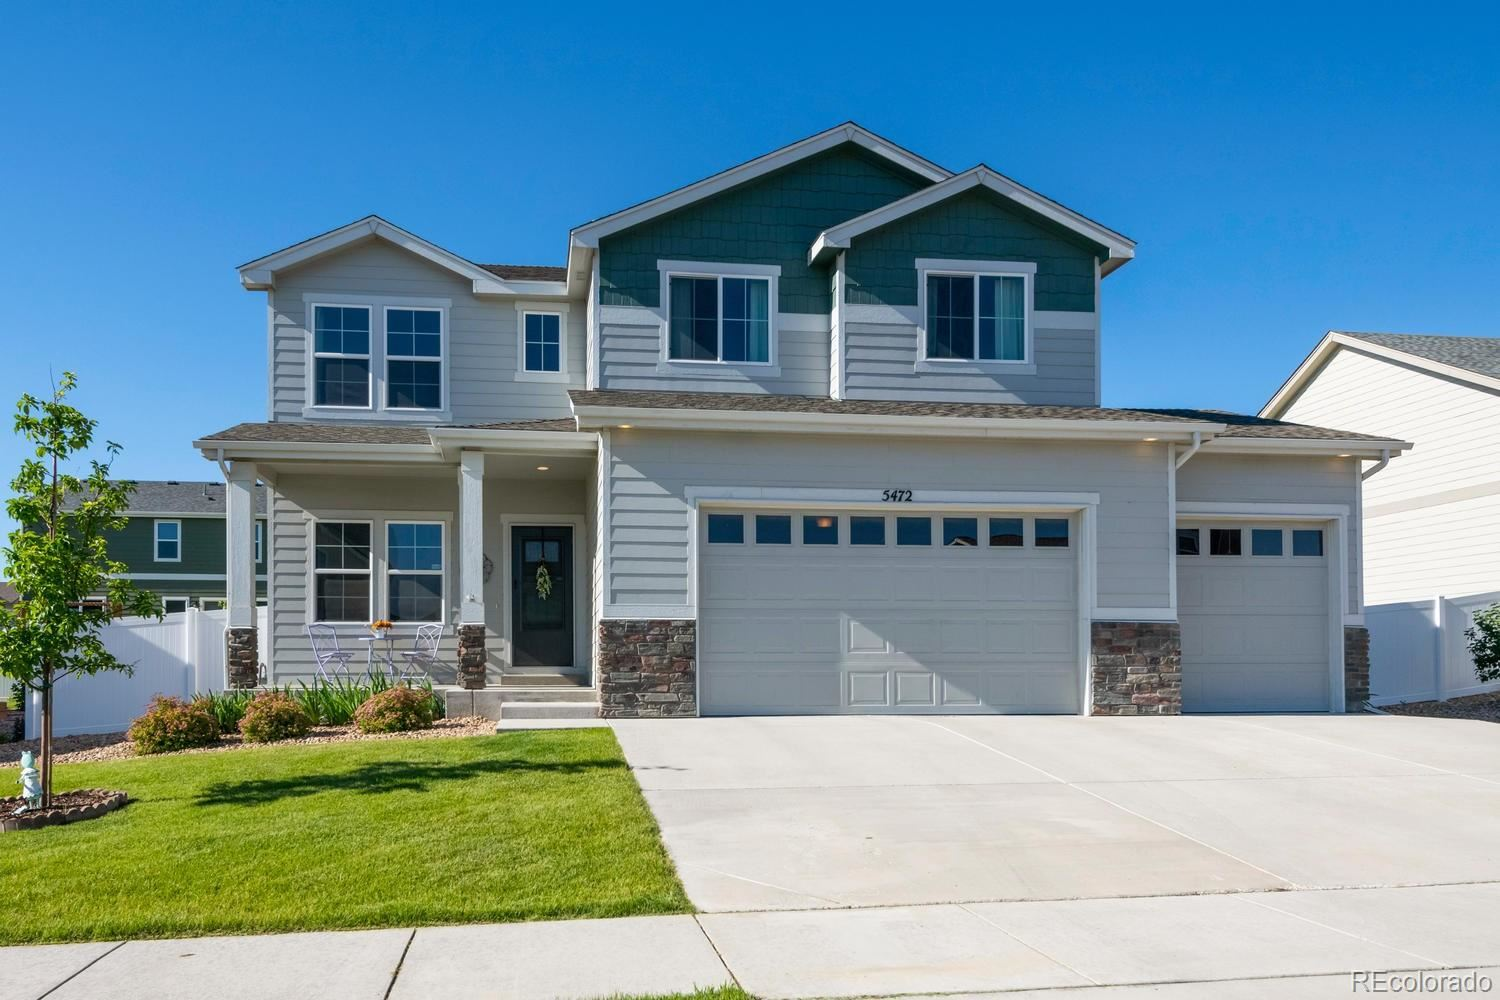 5472 Sequoia Place, Frederick, CO 80504 - #: 6625945